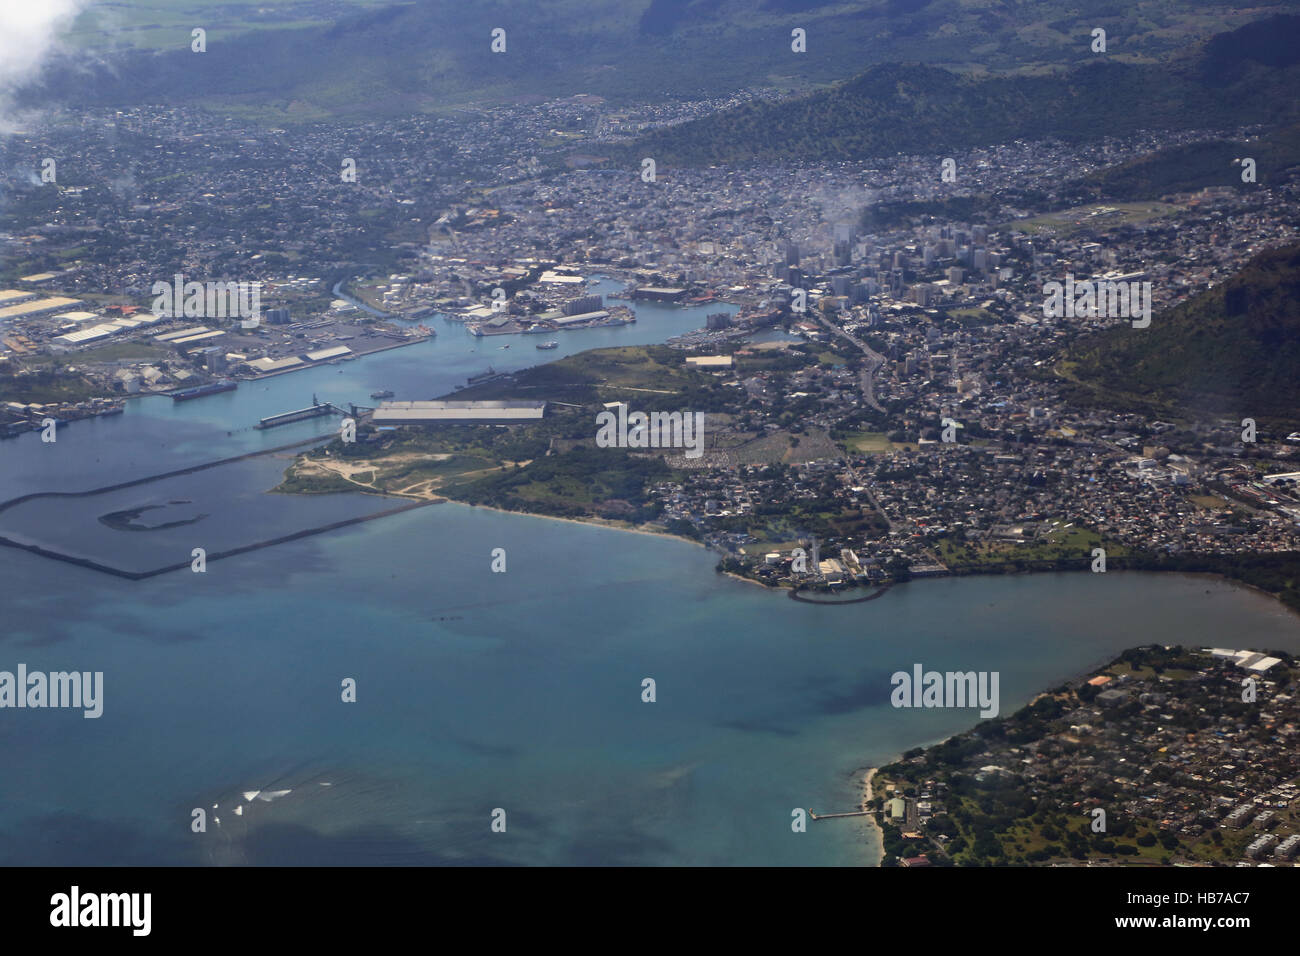 Ferieninsel Mauritius, Hauptstadt Port Louis Stockbild